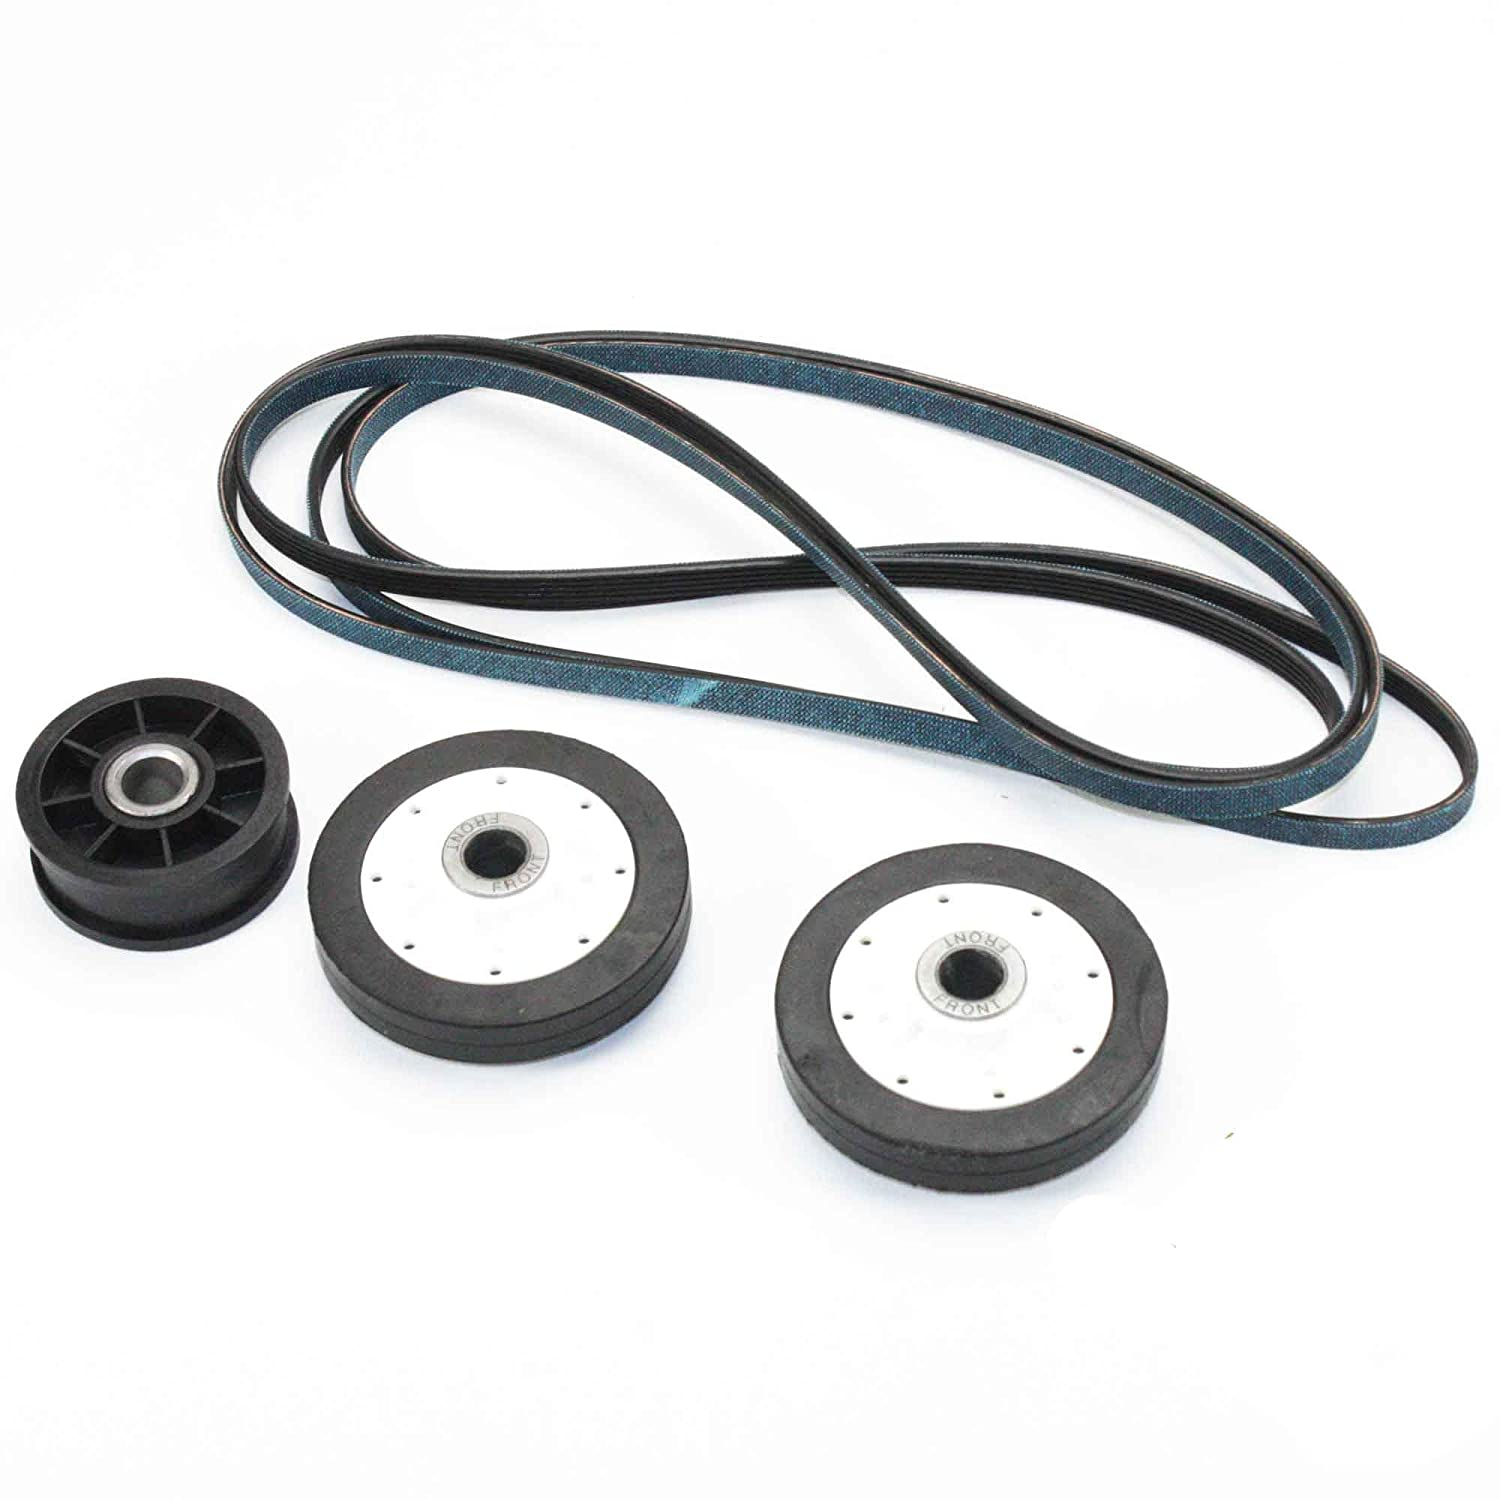 Supplying Demand 40111201 Y54414 37001042 Dryer Belt & Pulley Rollers Repair Kit